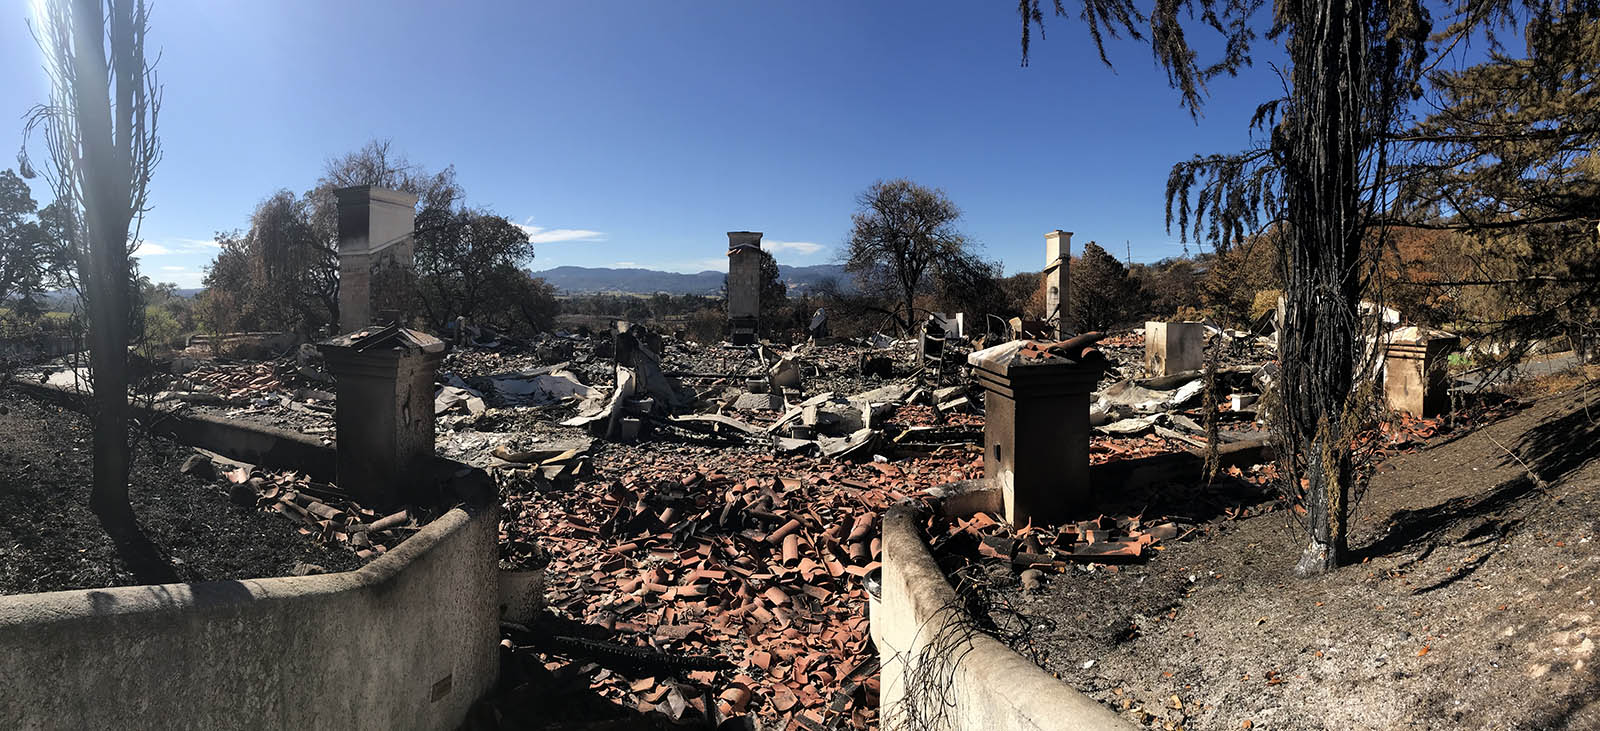 ROY Estate winery damage included charred bricks from the wildfires in California